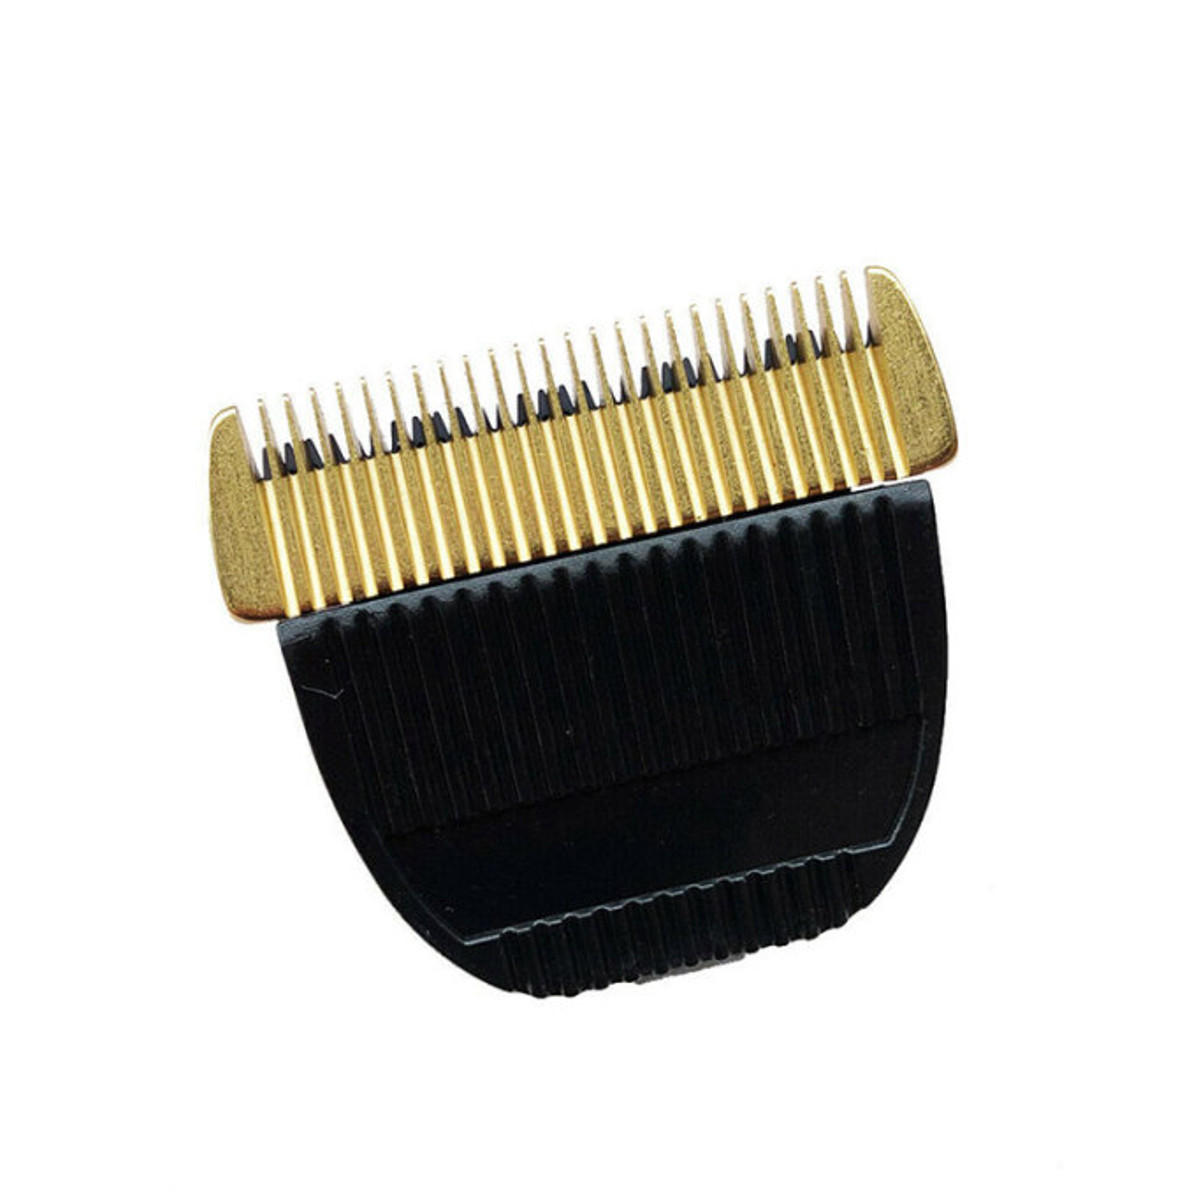 Replacement Razor Shaver Blades Head For Panasonic ER-GP8 1610 1611 1511 153 154 160 VG101